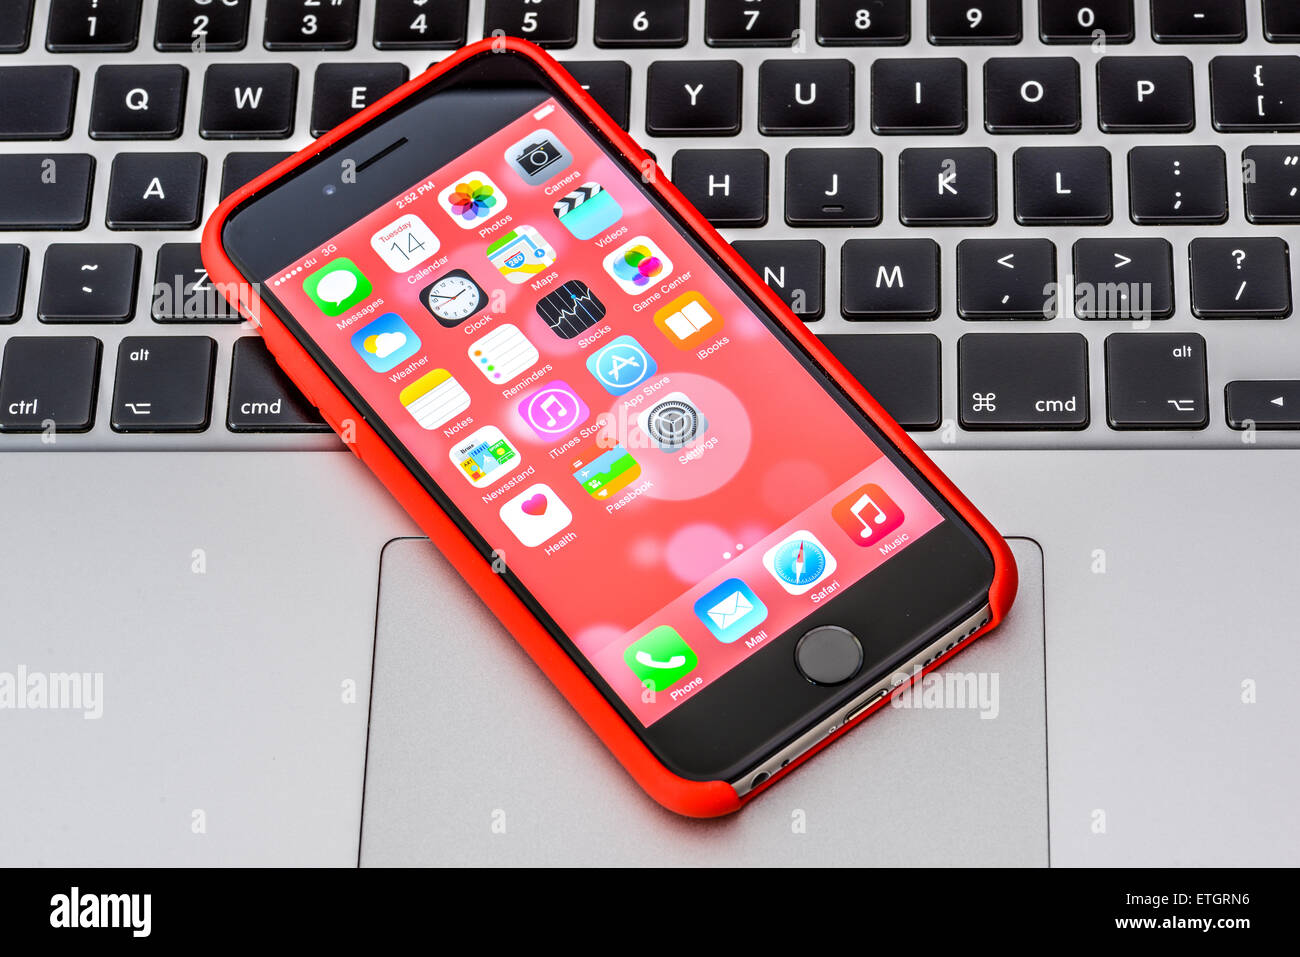 iPhone 6 in red case on an Apple Macbook keyboard - Stock Image